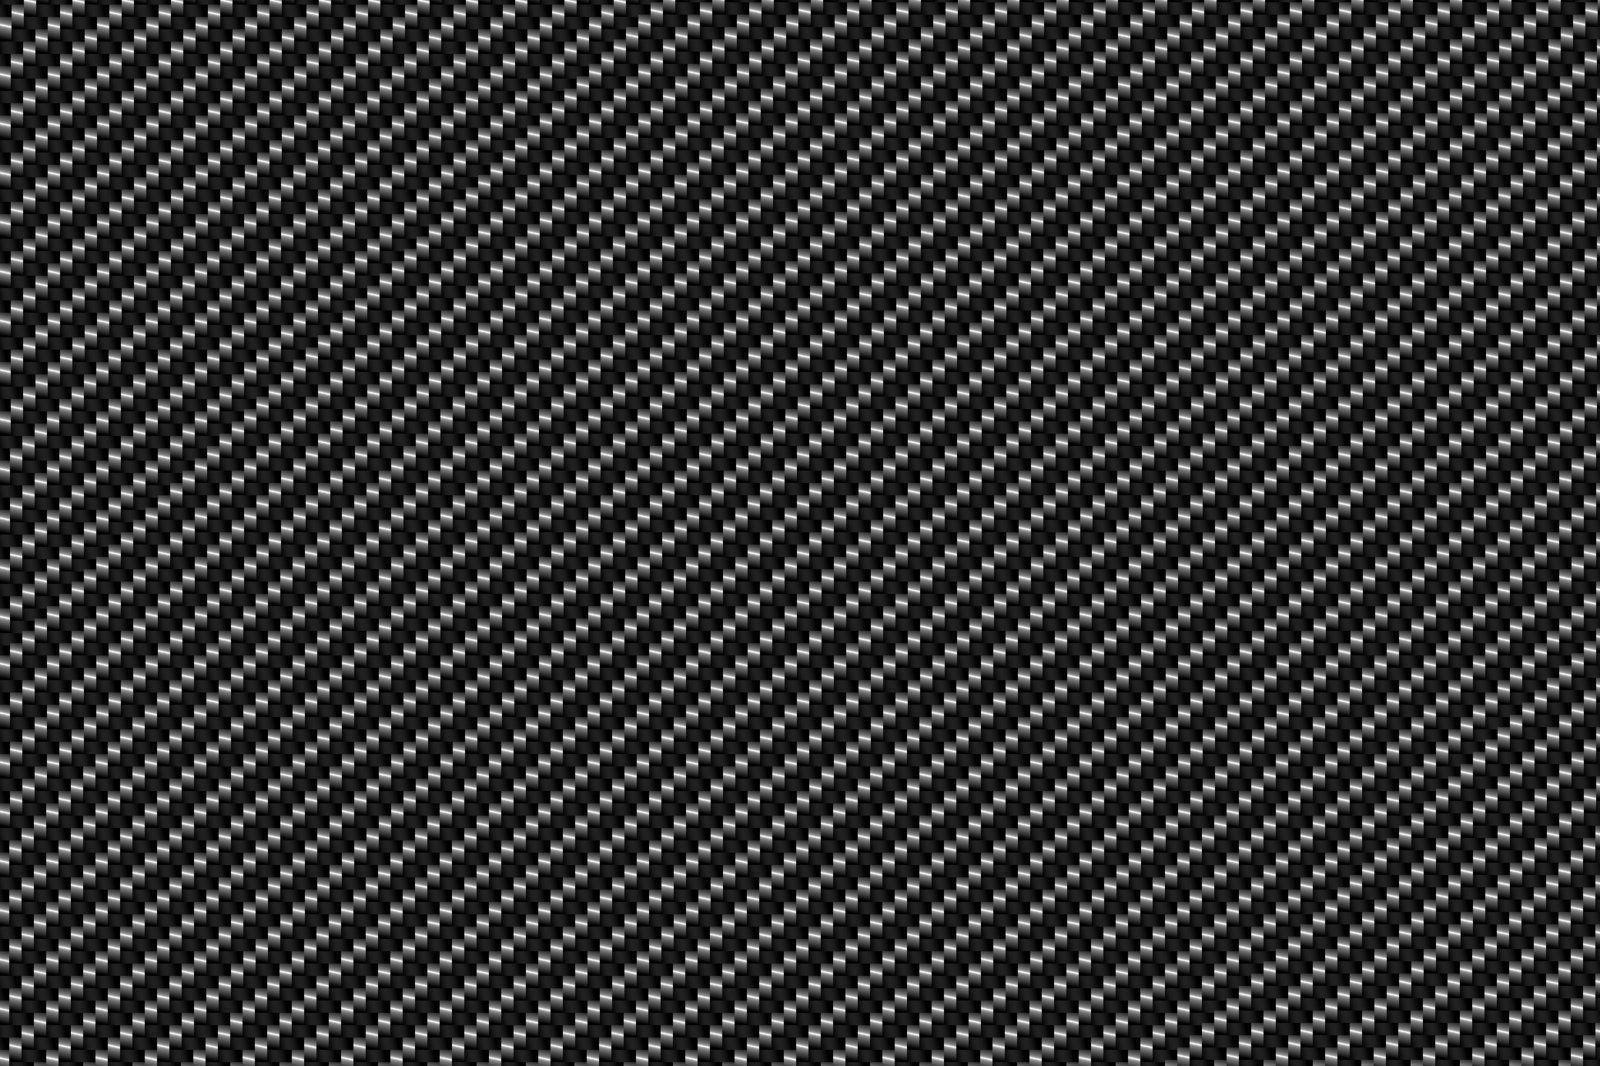 1600x1066 Carbon fiber samsung wallpapers galaxy s5 s4 - Free HD ...